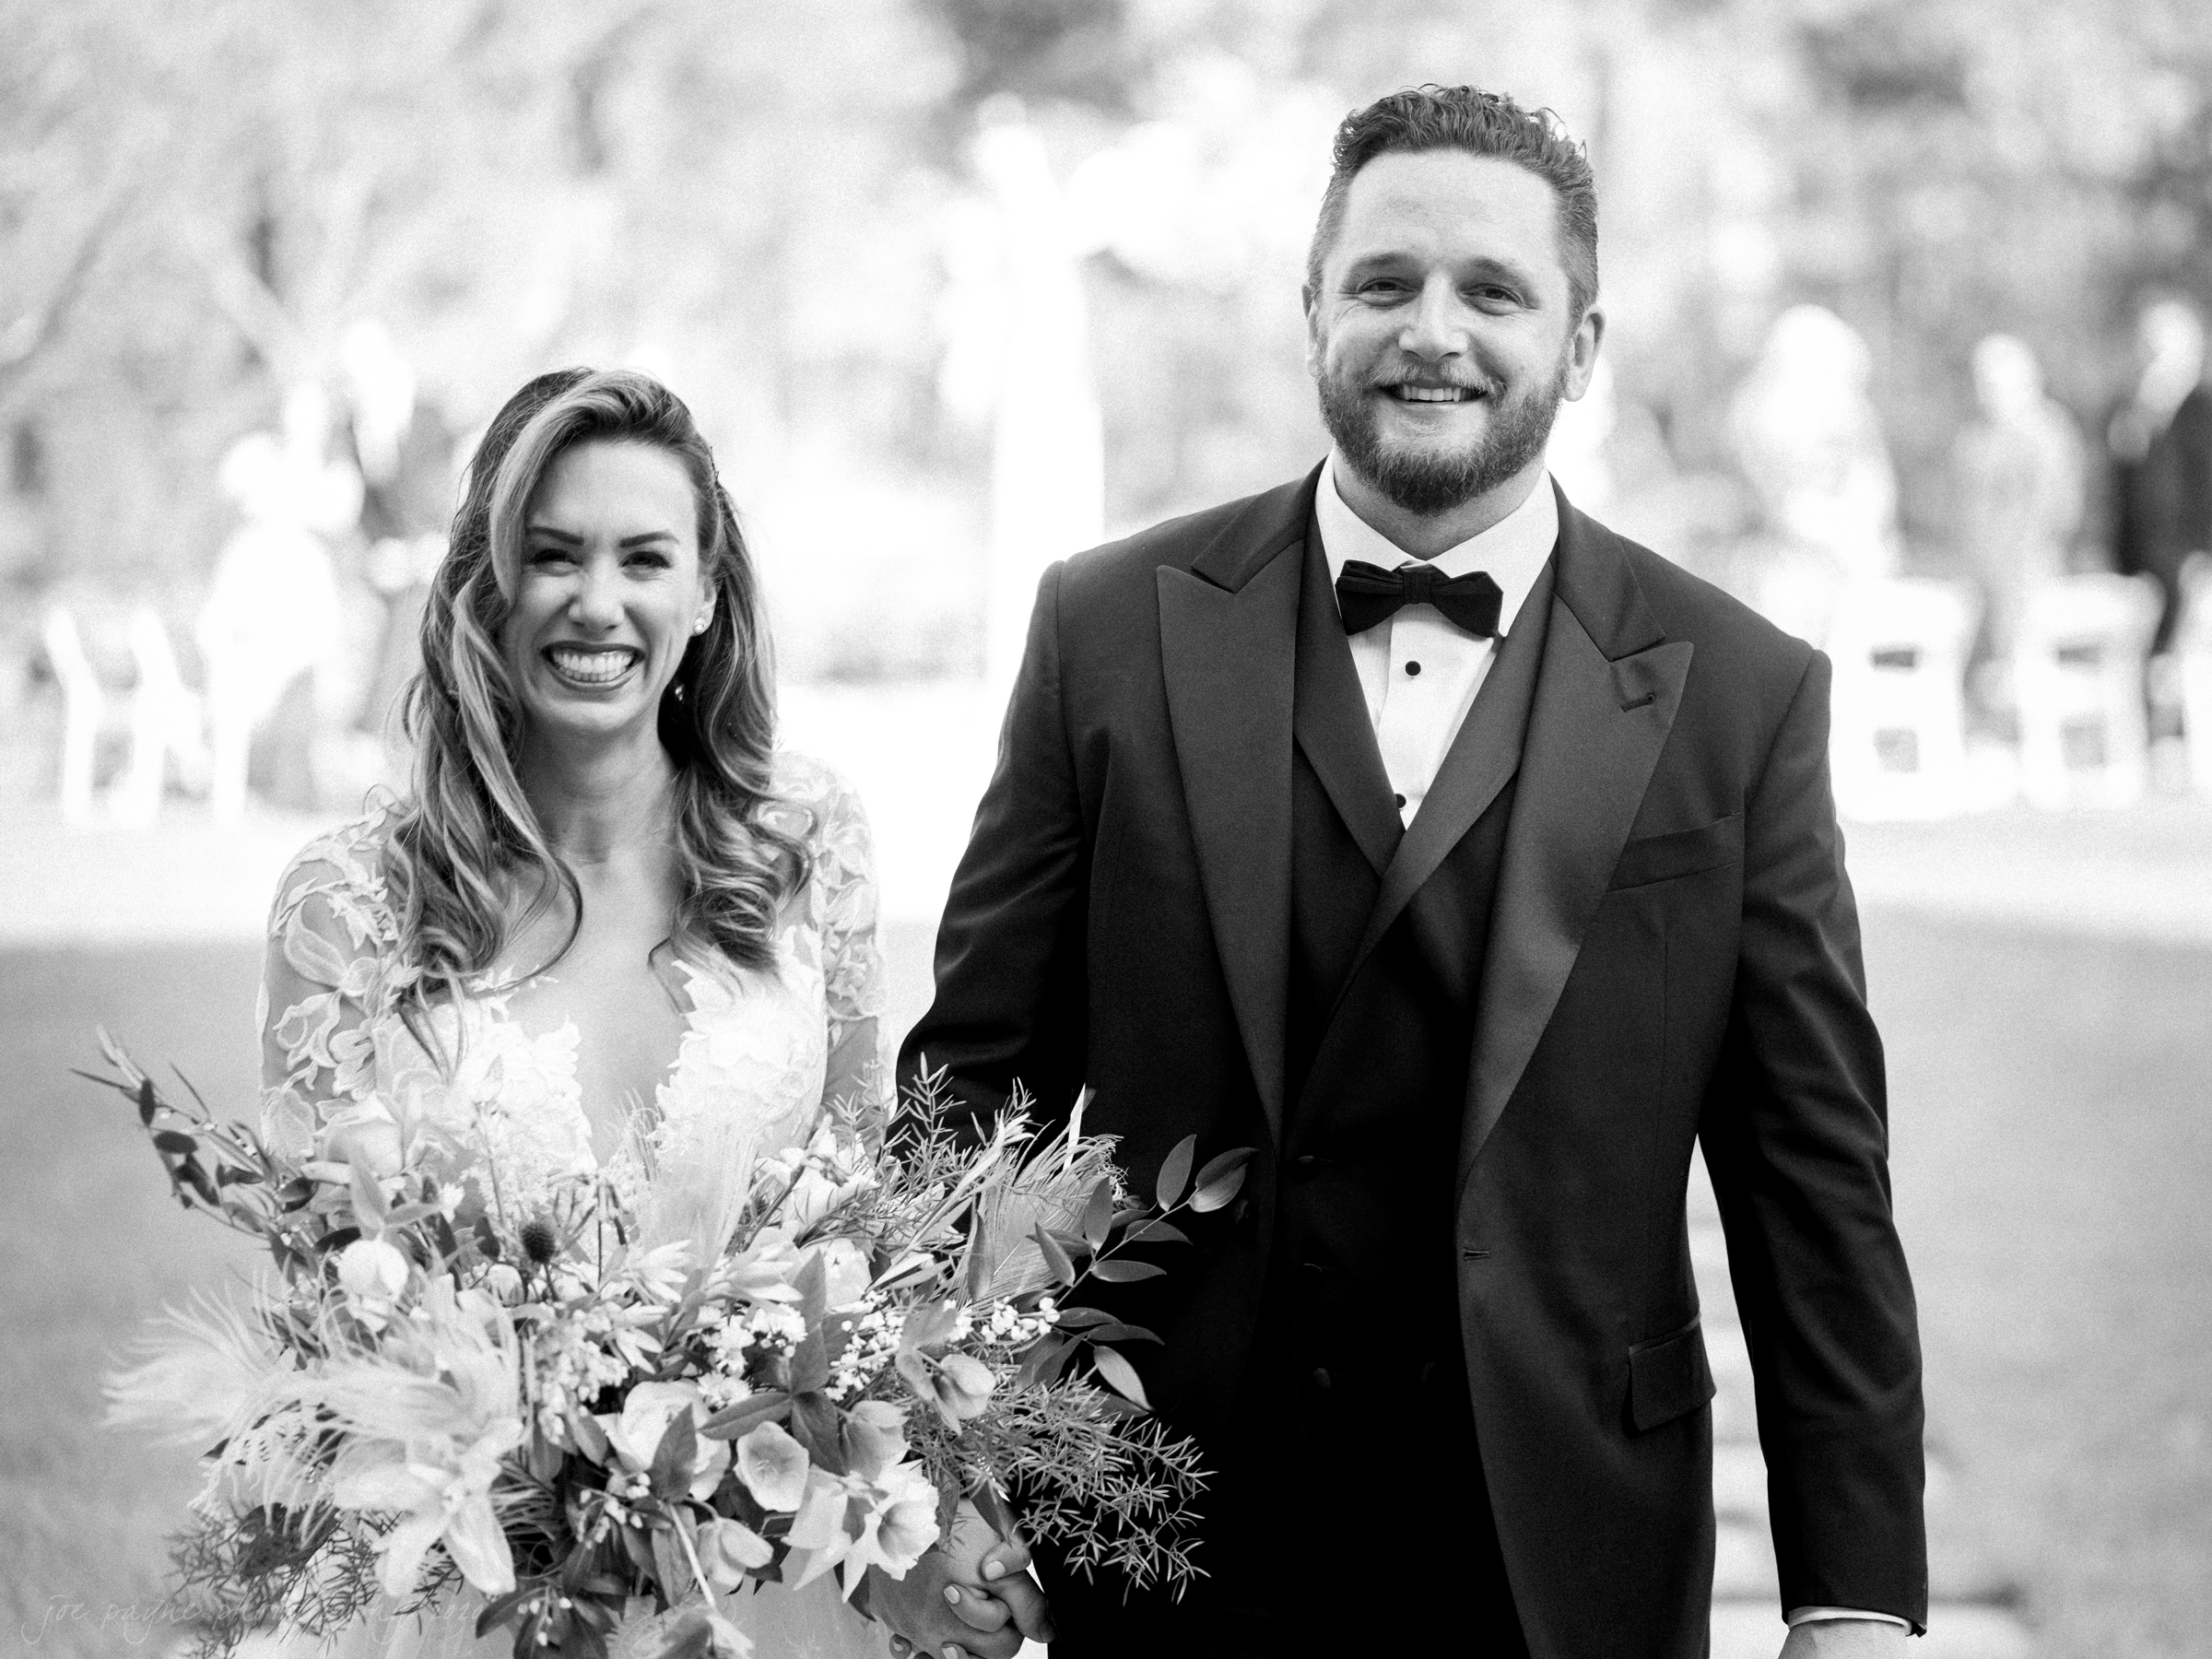 umstead hotel park wedding photography brittany harrison 25